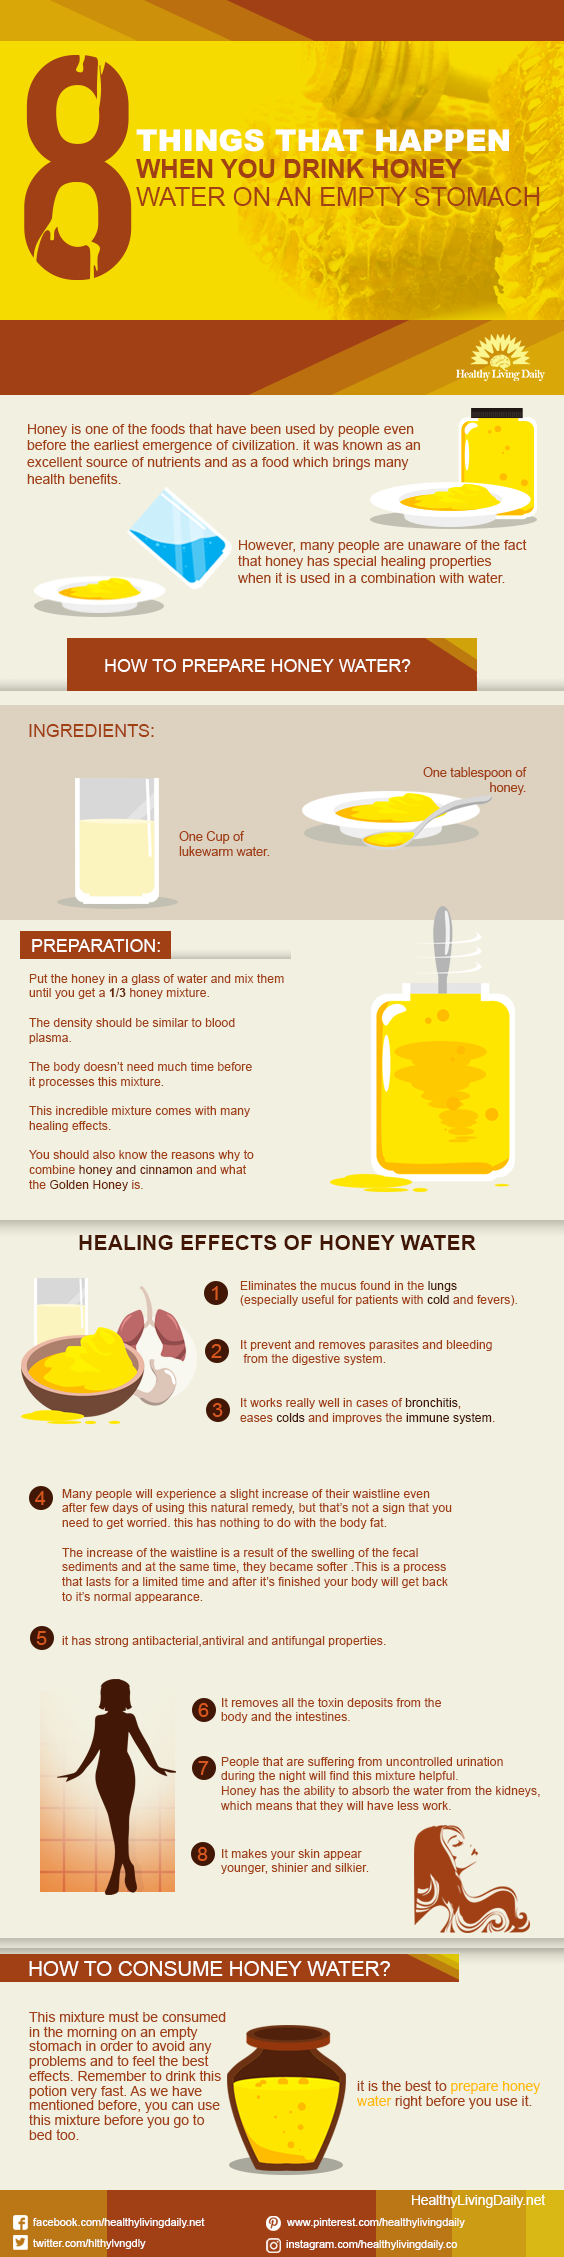 8 Things that Happen When You Drink Honey Water on an Empty Stomach